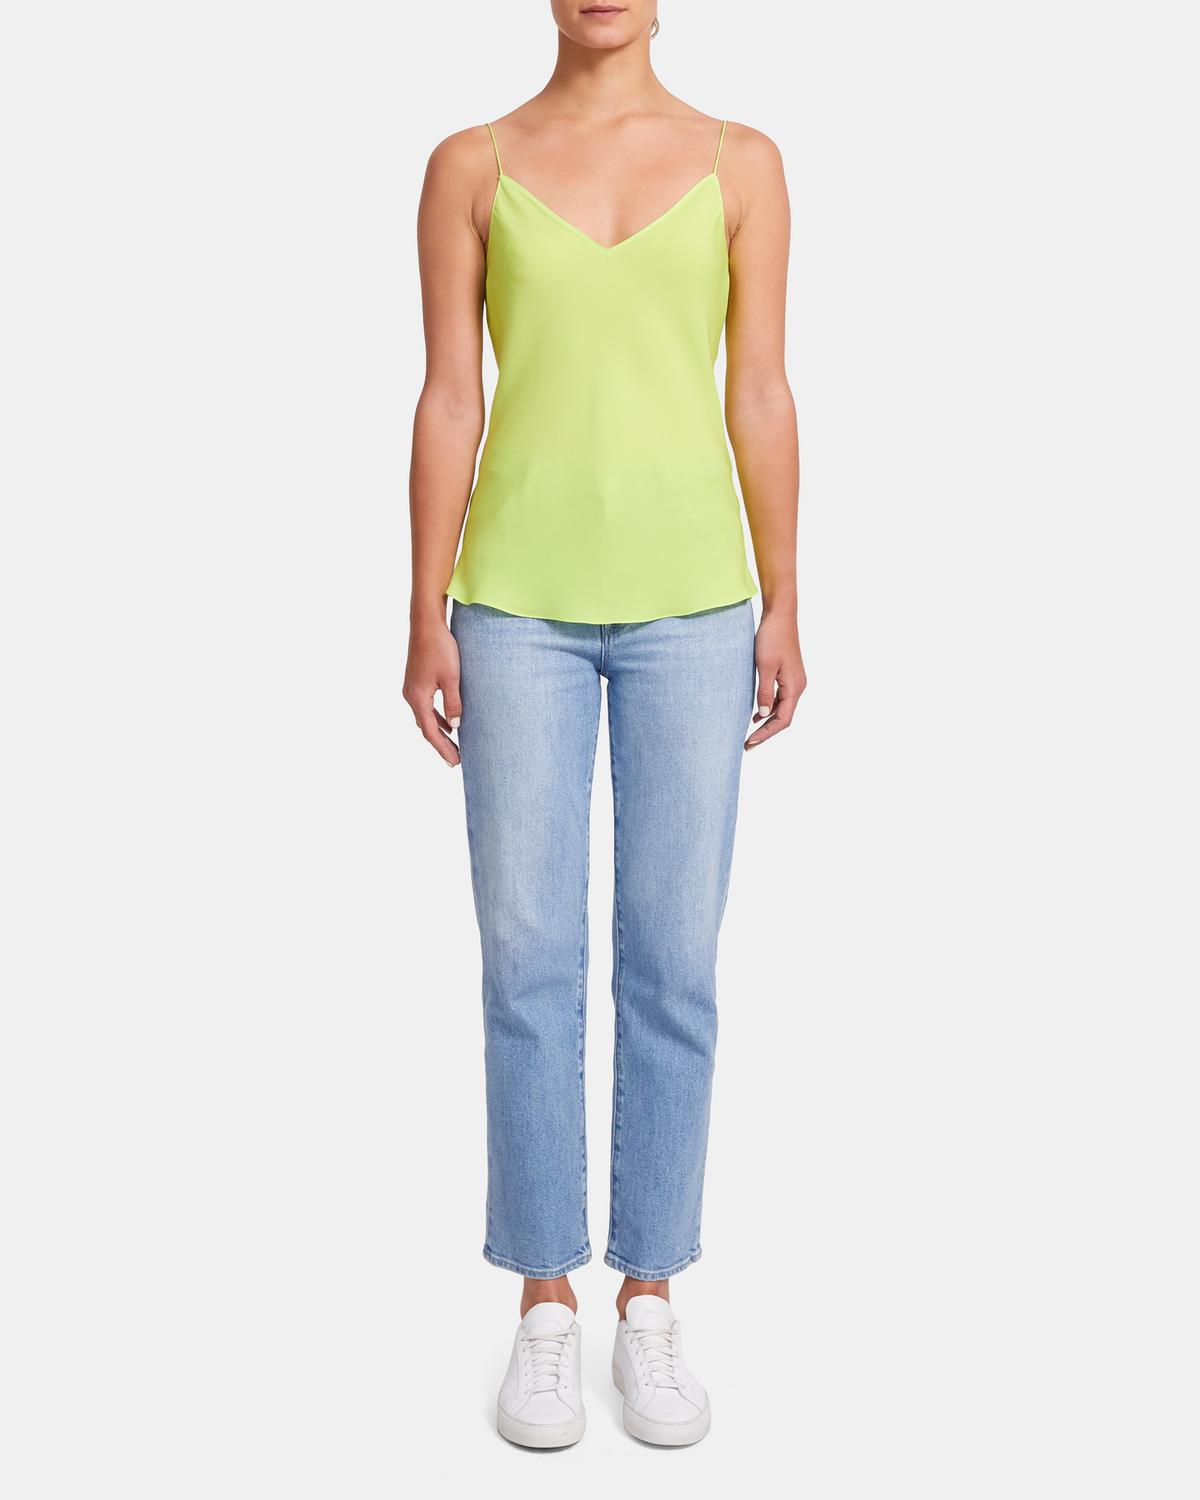 Neon Easy Slip Top